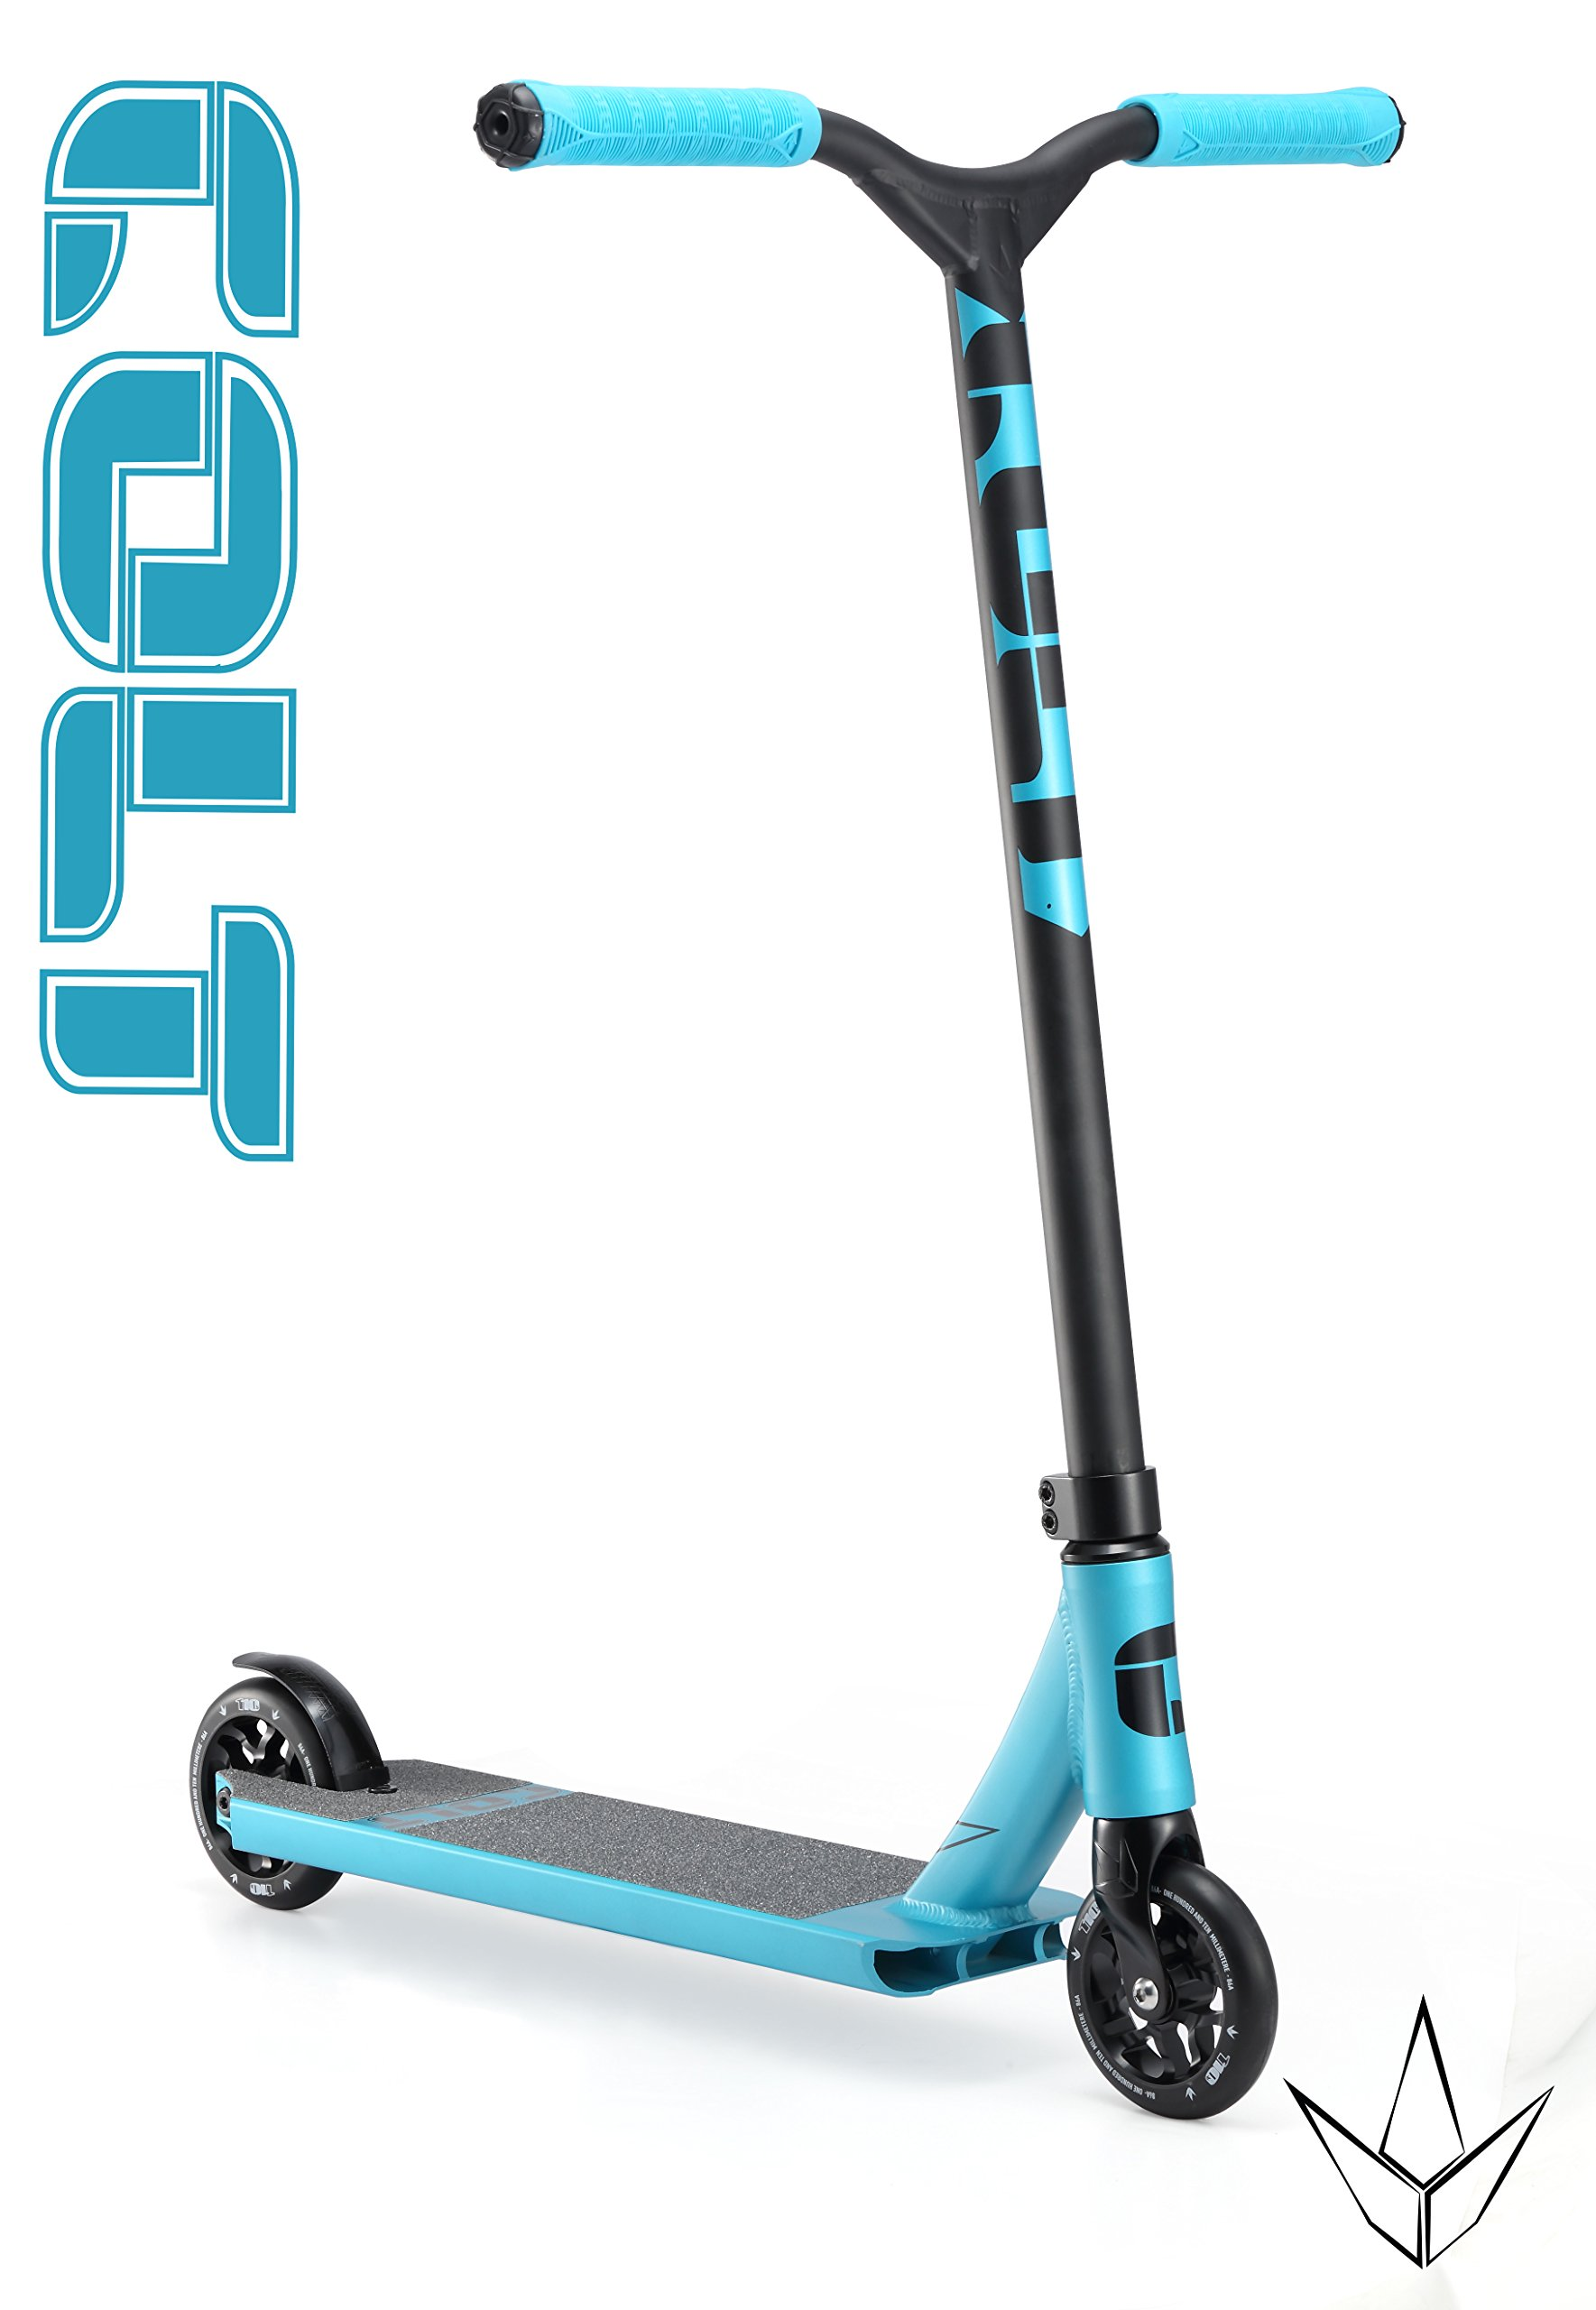 Envy Series 2 Colt Scooter (Blue) by Envy Scooters